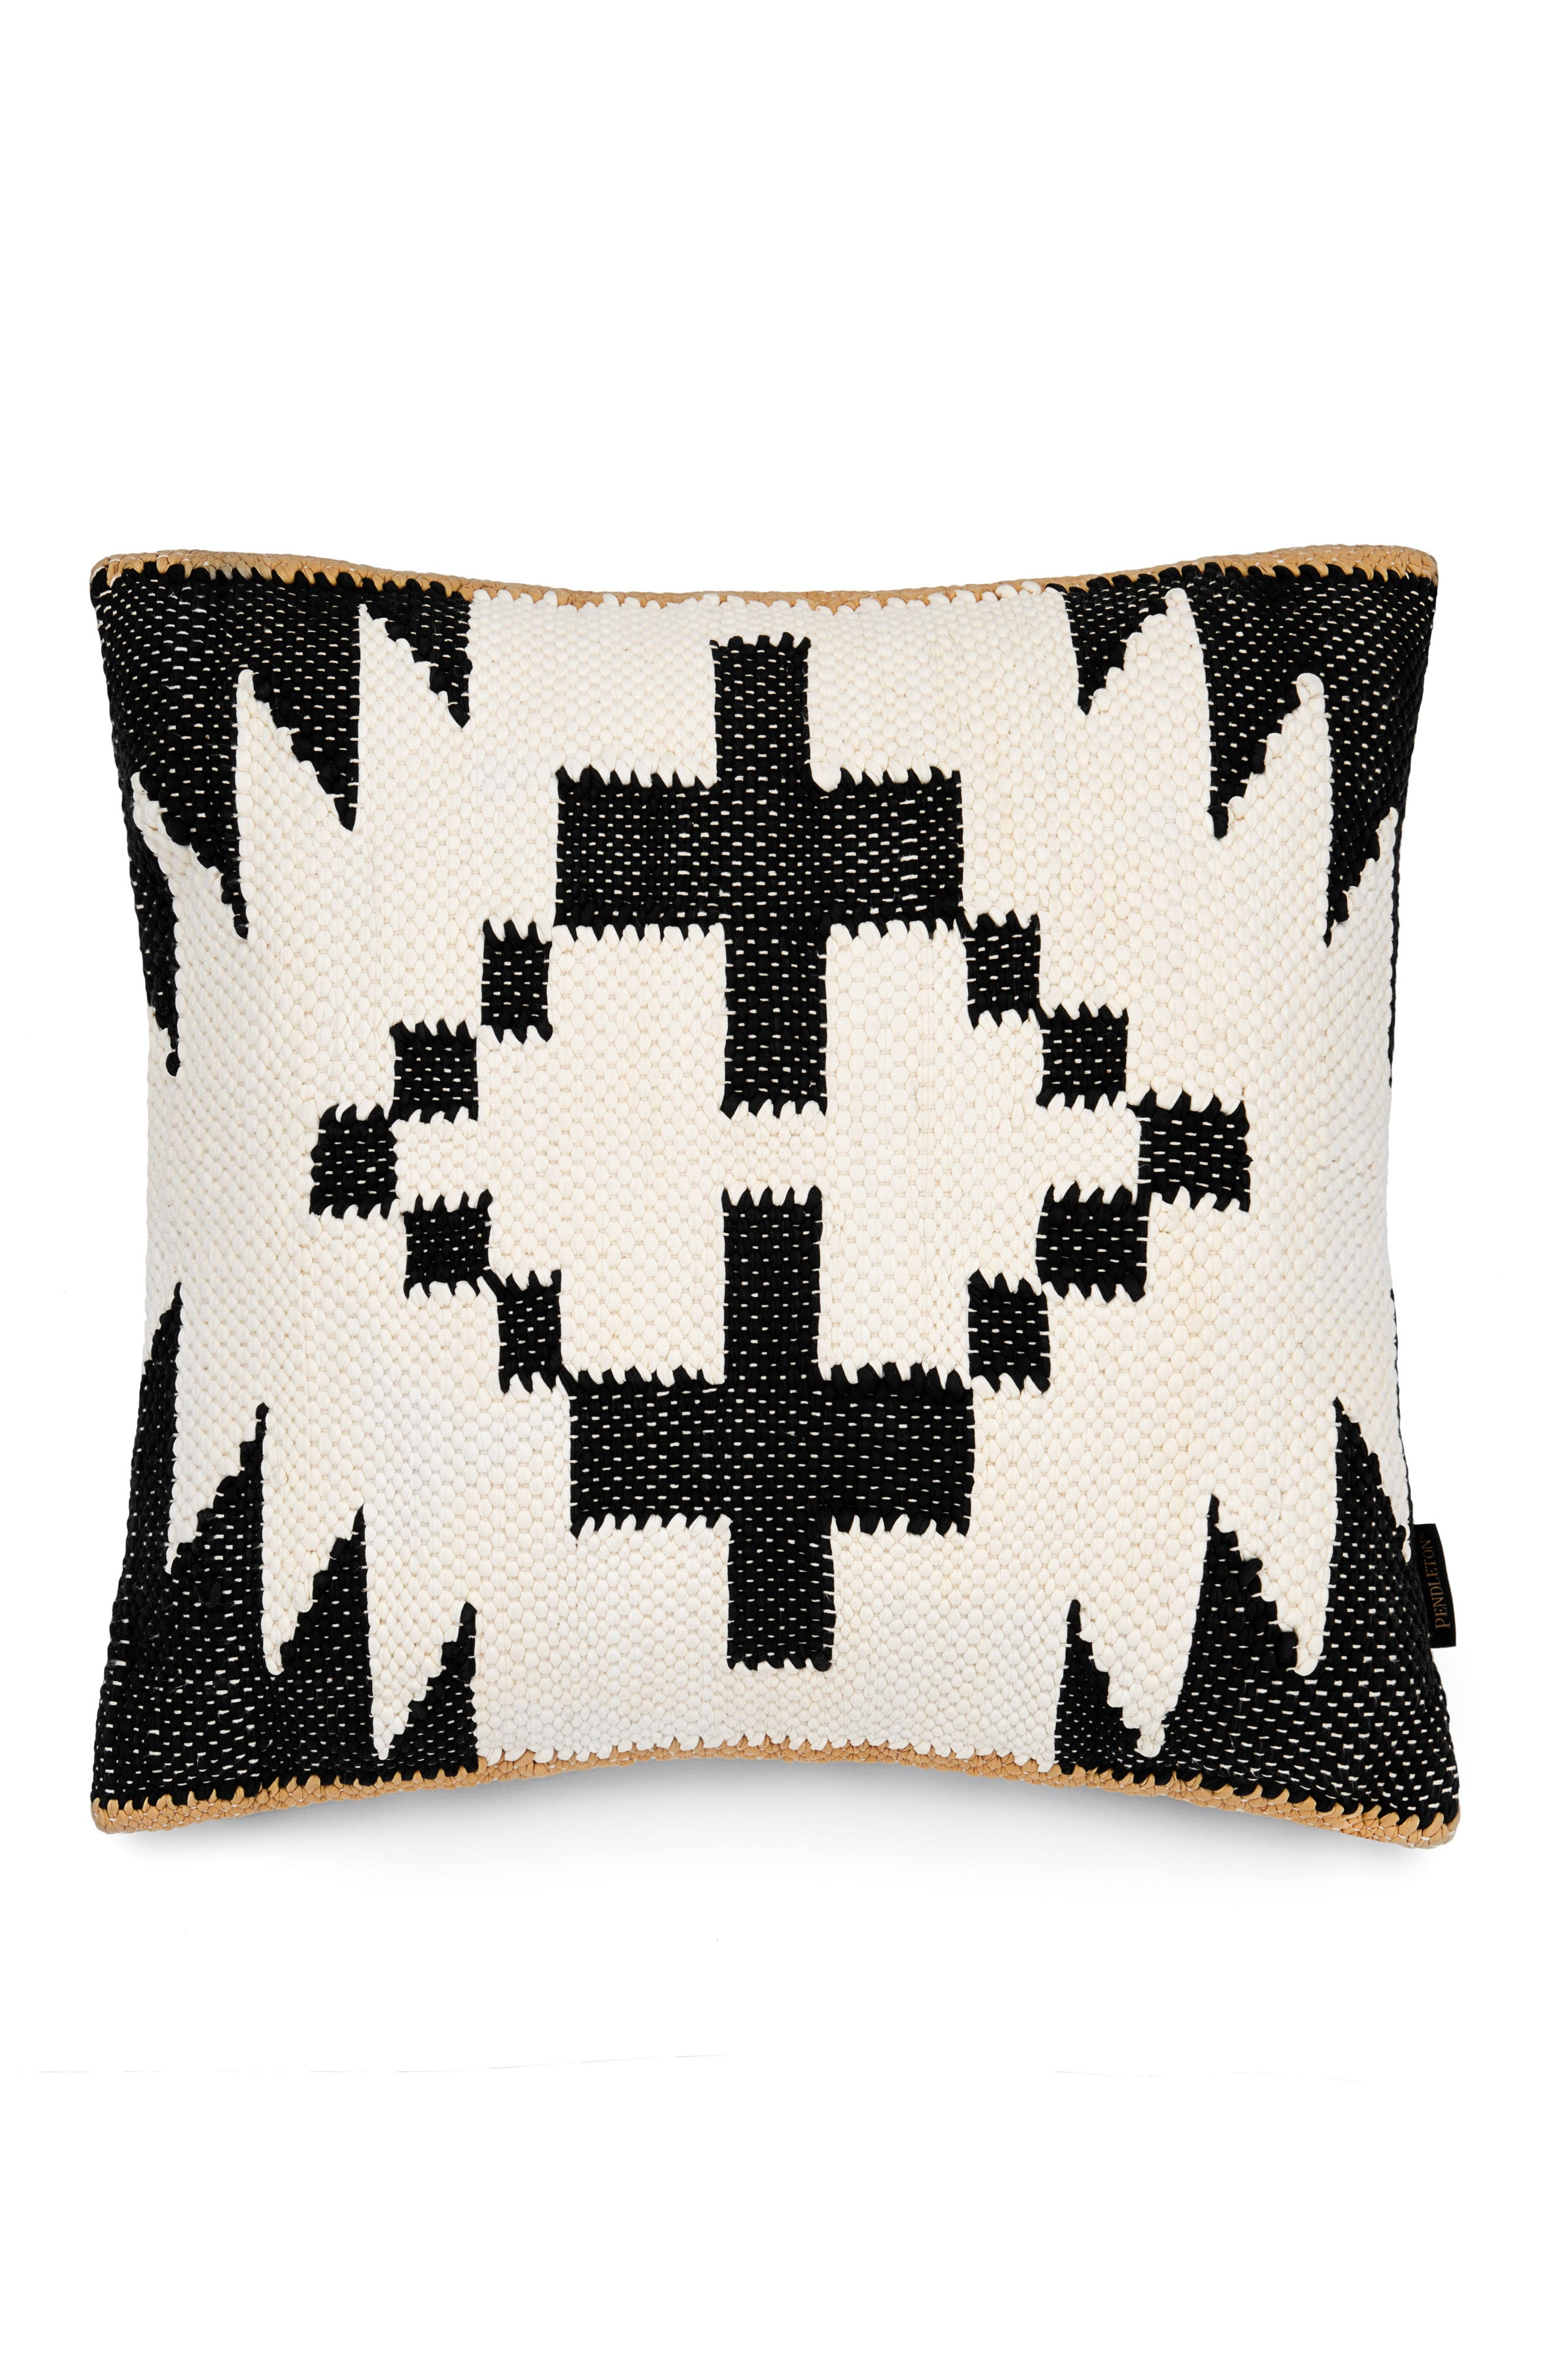 Spider Rock Chindi Oversize Accent Pillow,                             Main thumbnail 1, color,                             250